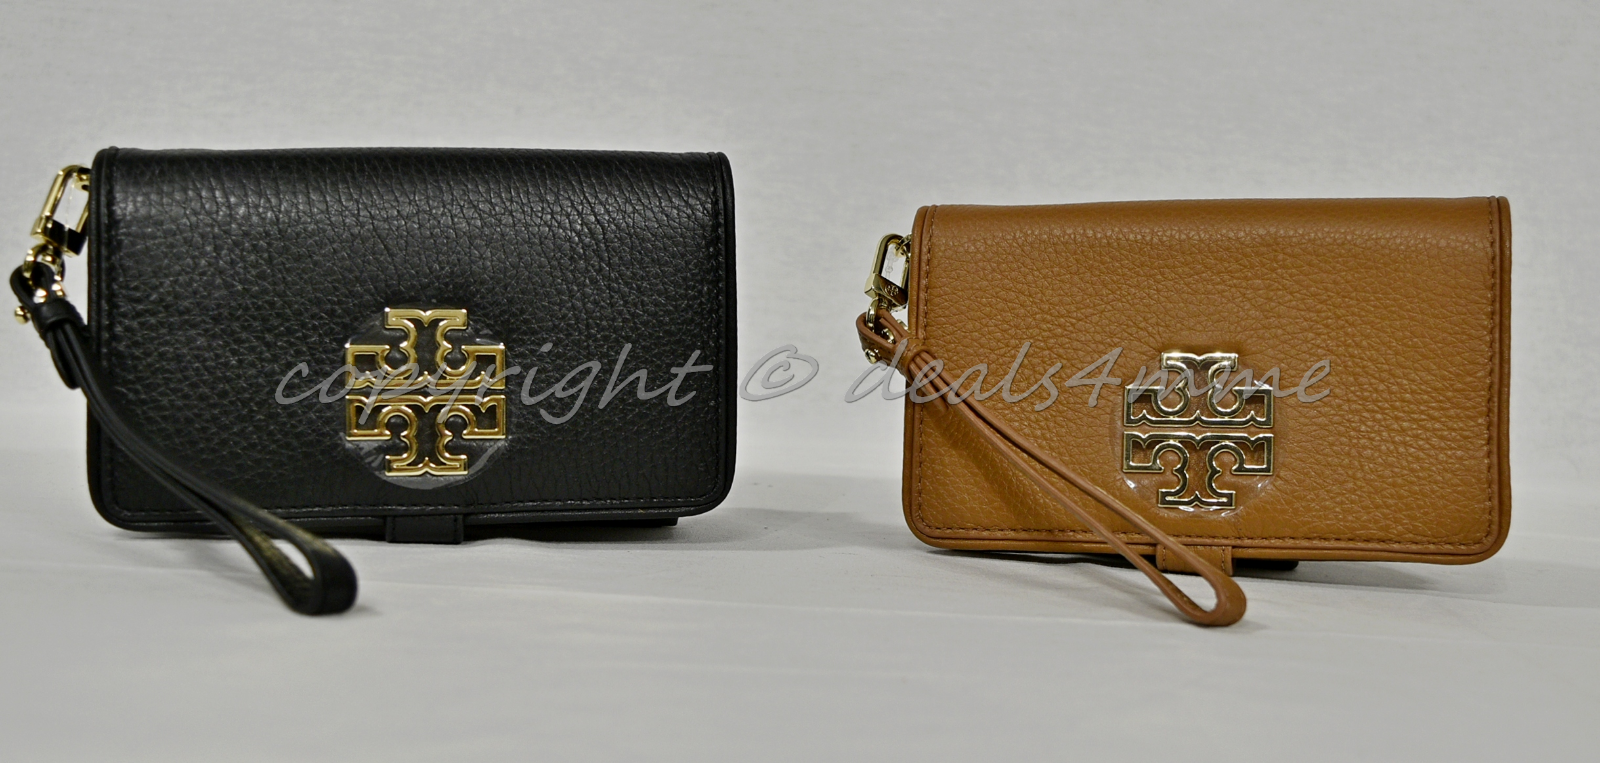 5d52a05686bb Tory Burch Britten Pebble Leather Smartphone and 50 similar items. S l1600